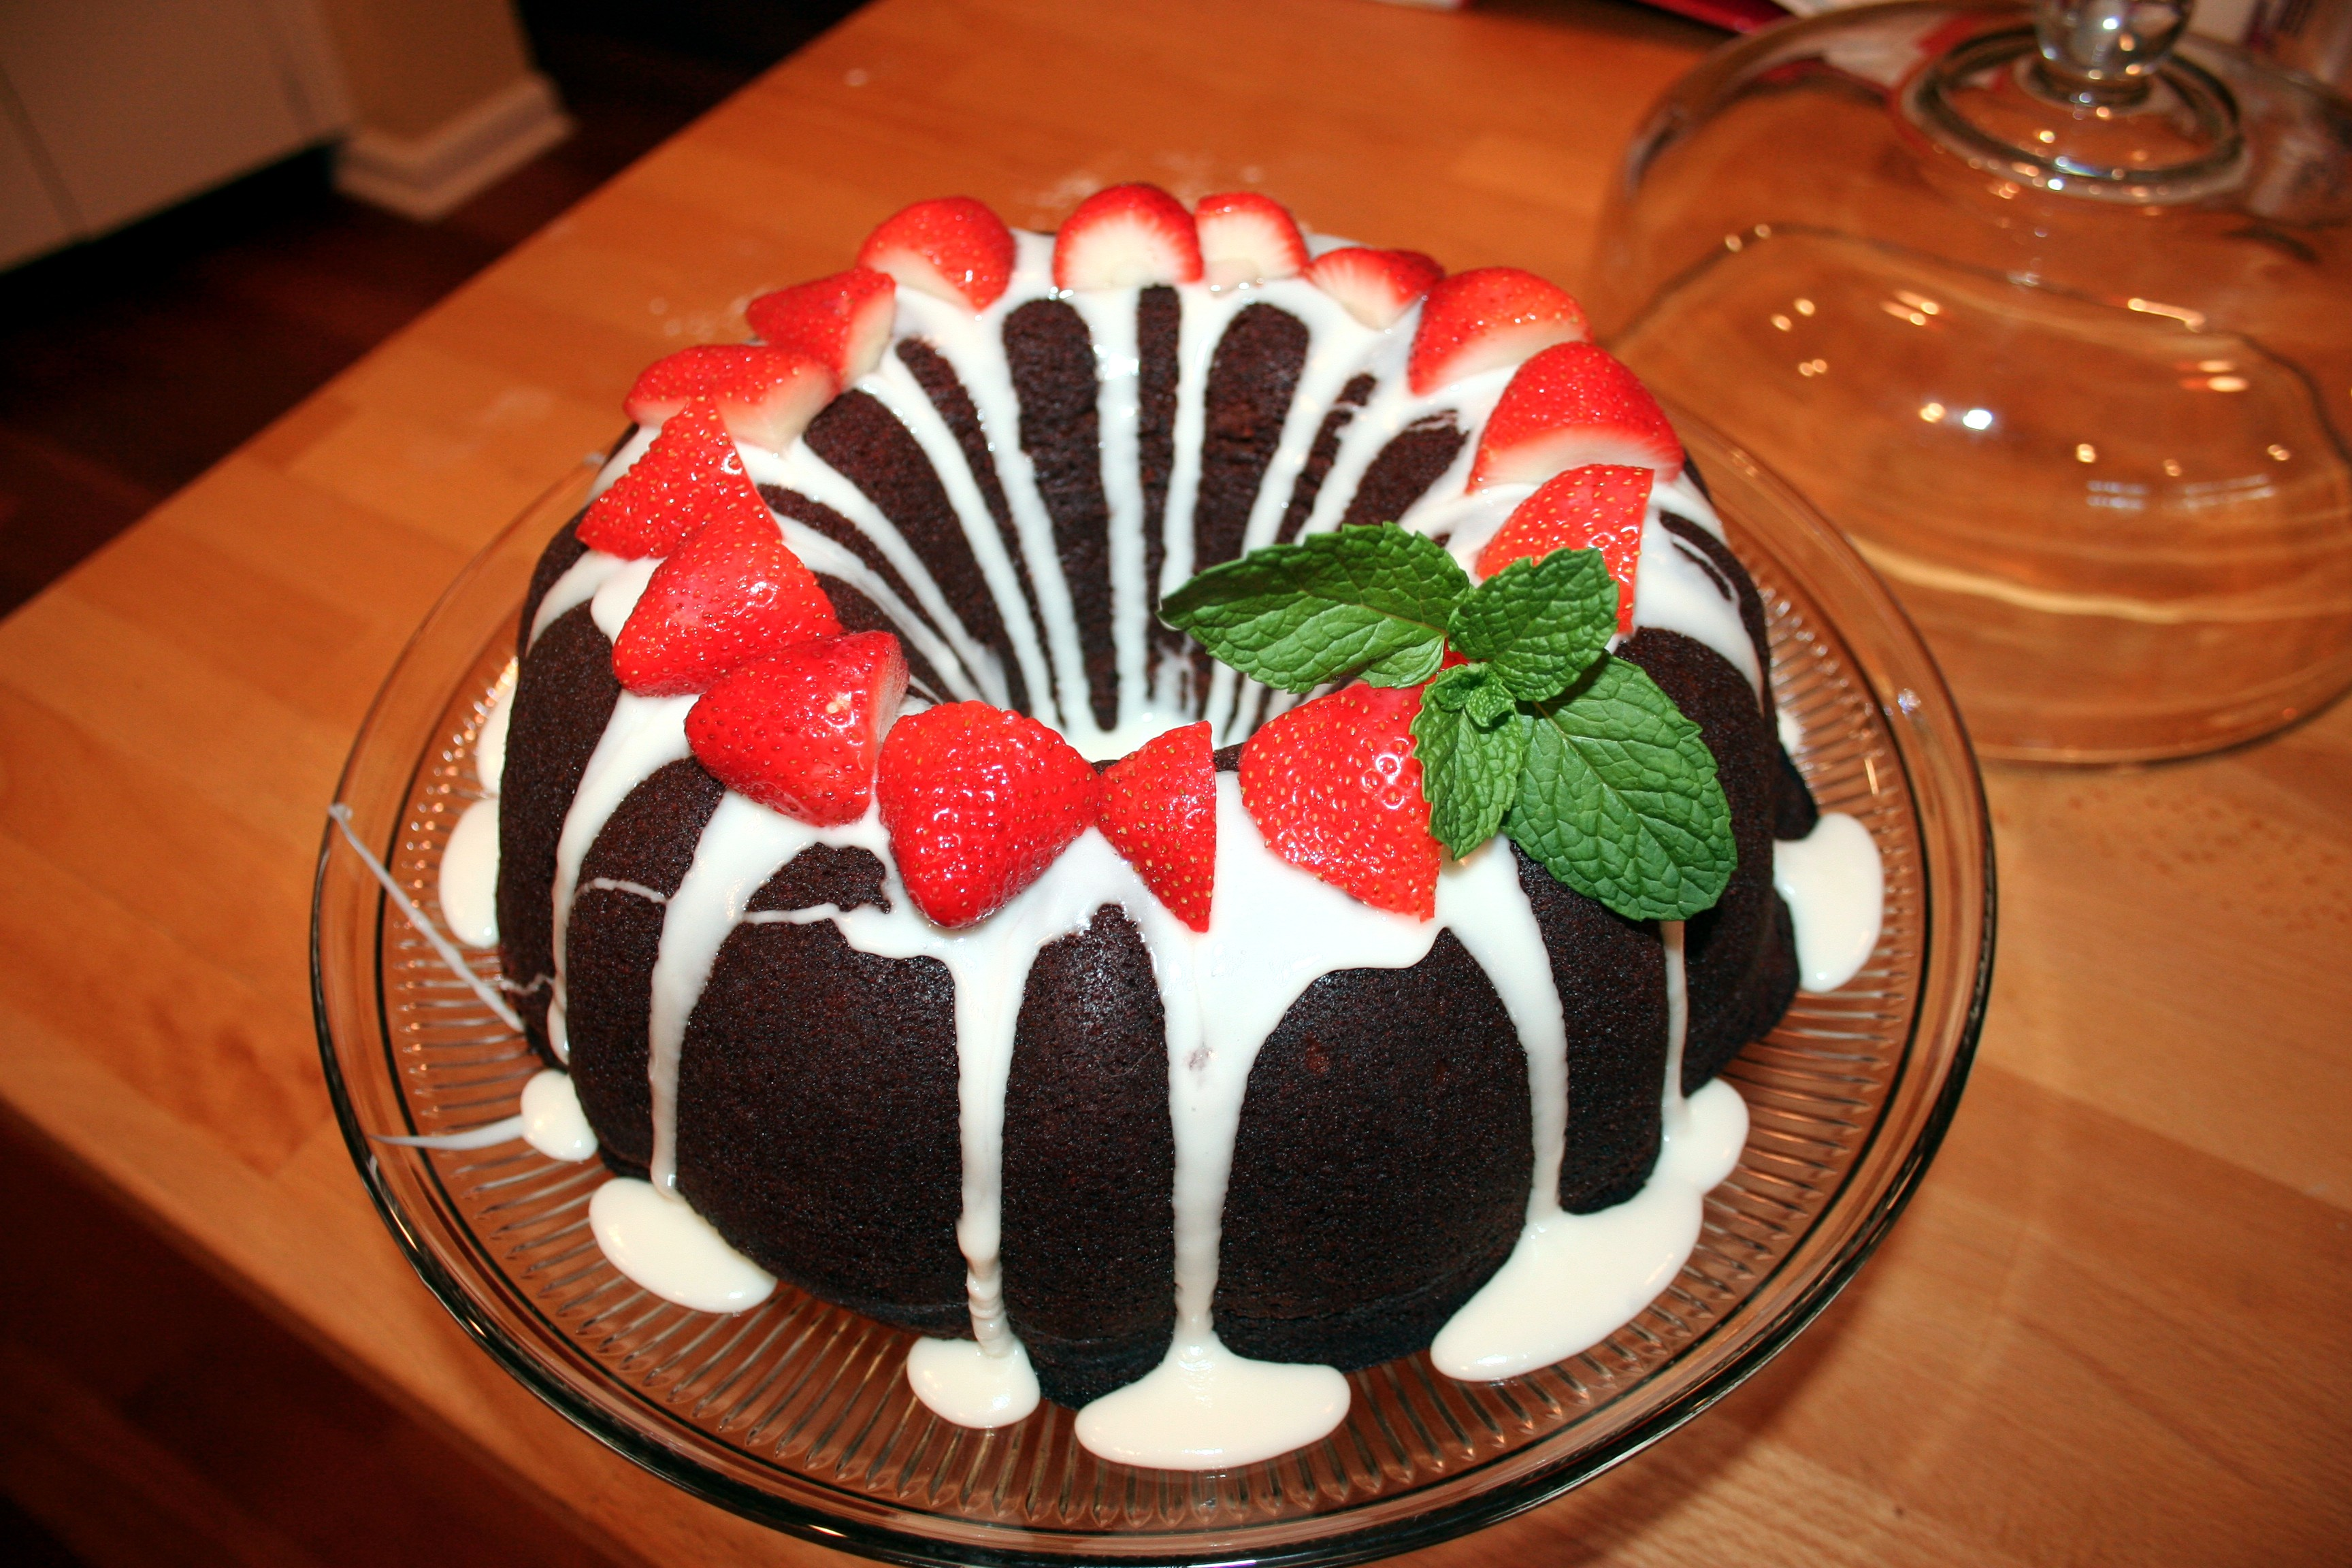 Dark Chocolate Bundt Cake With White Icing And Strawberries